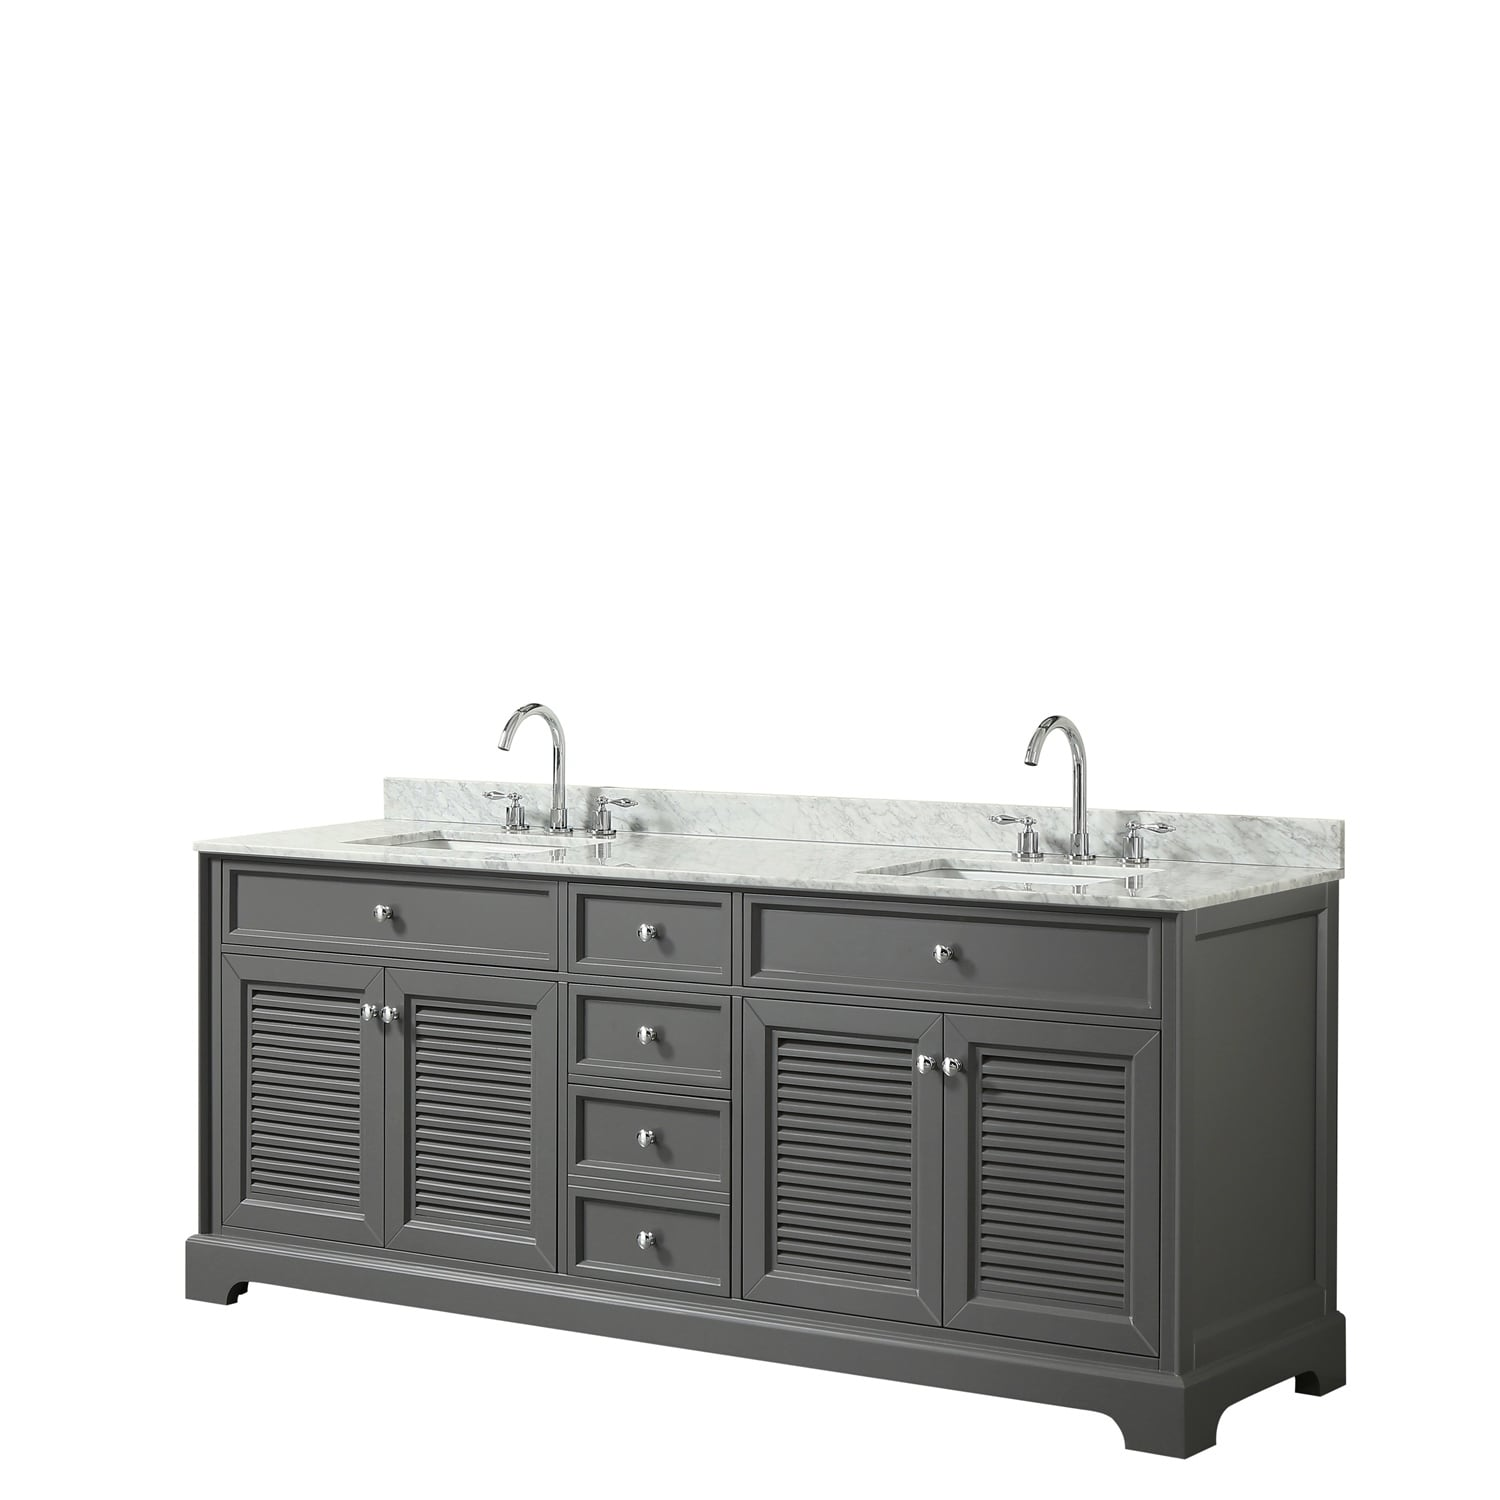 Tamara 80 Inch Dark Gray Double Vanity Square Sinks No Mirror